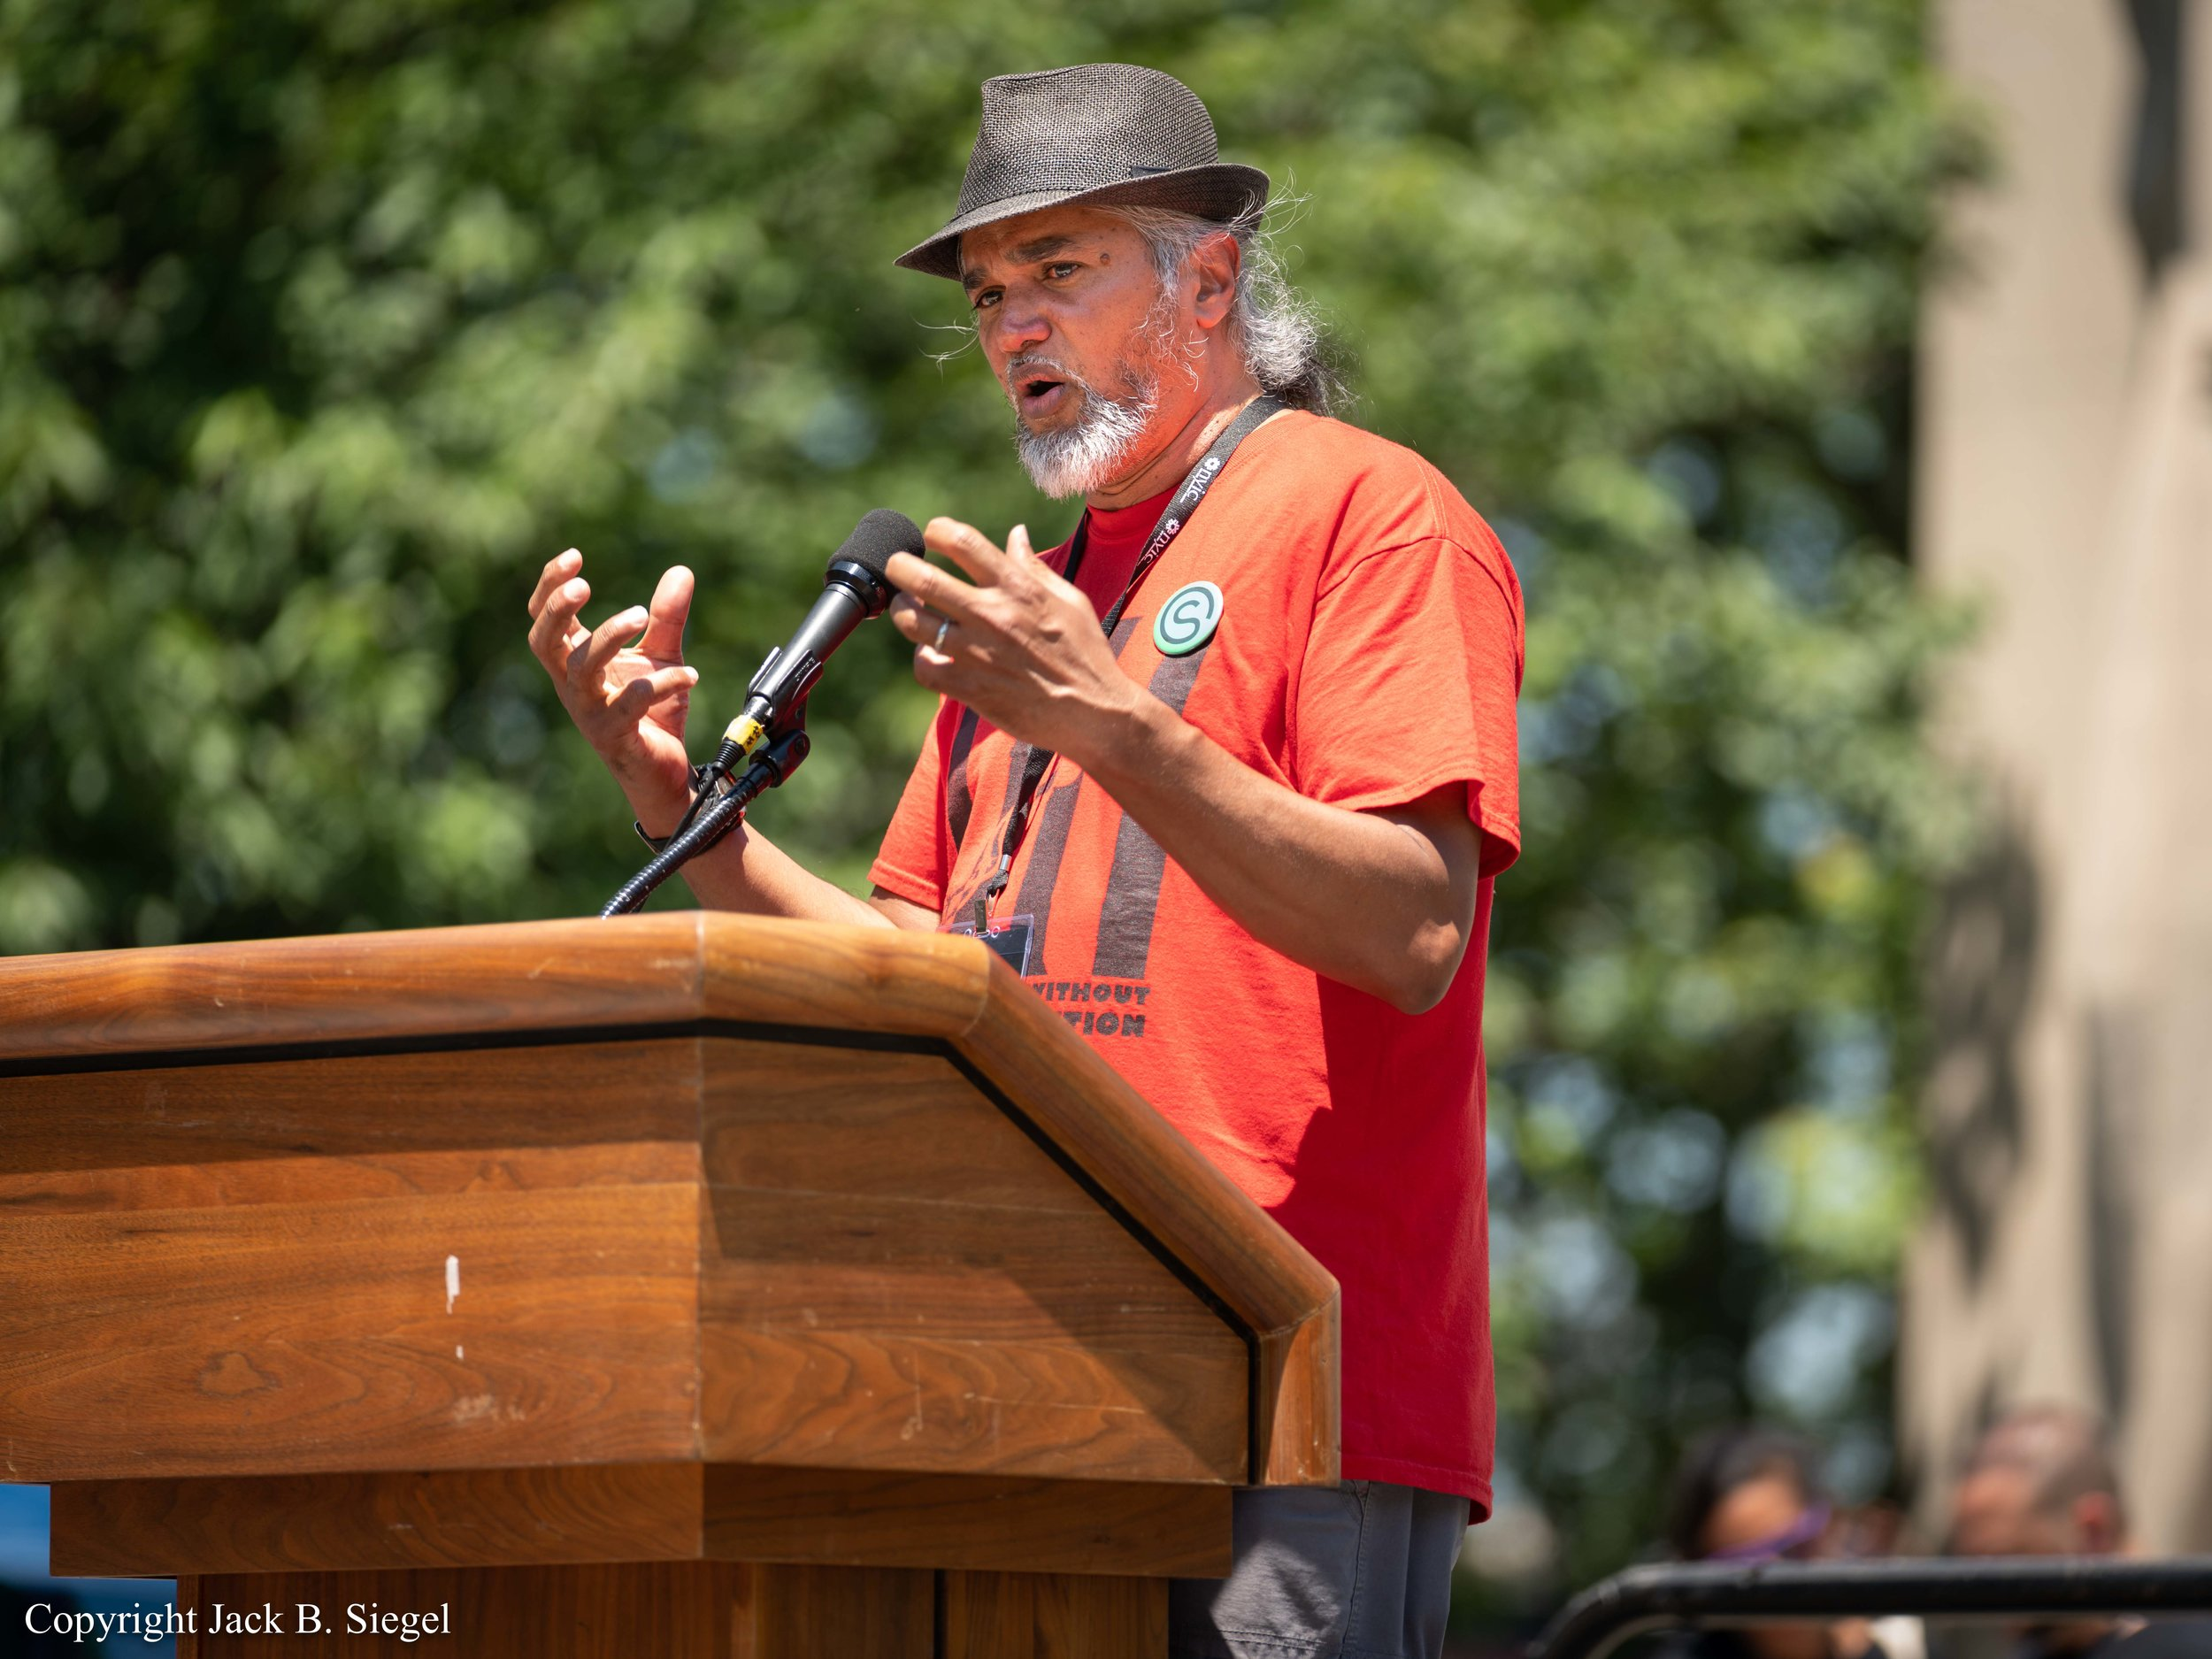 _DS24546_Copyright_Ravi Ragbir Speaking to Those Gathered in Cadman Plaza Park About his Arrest by ICE in January 2018.jpg